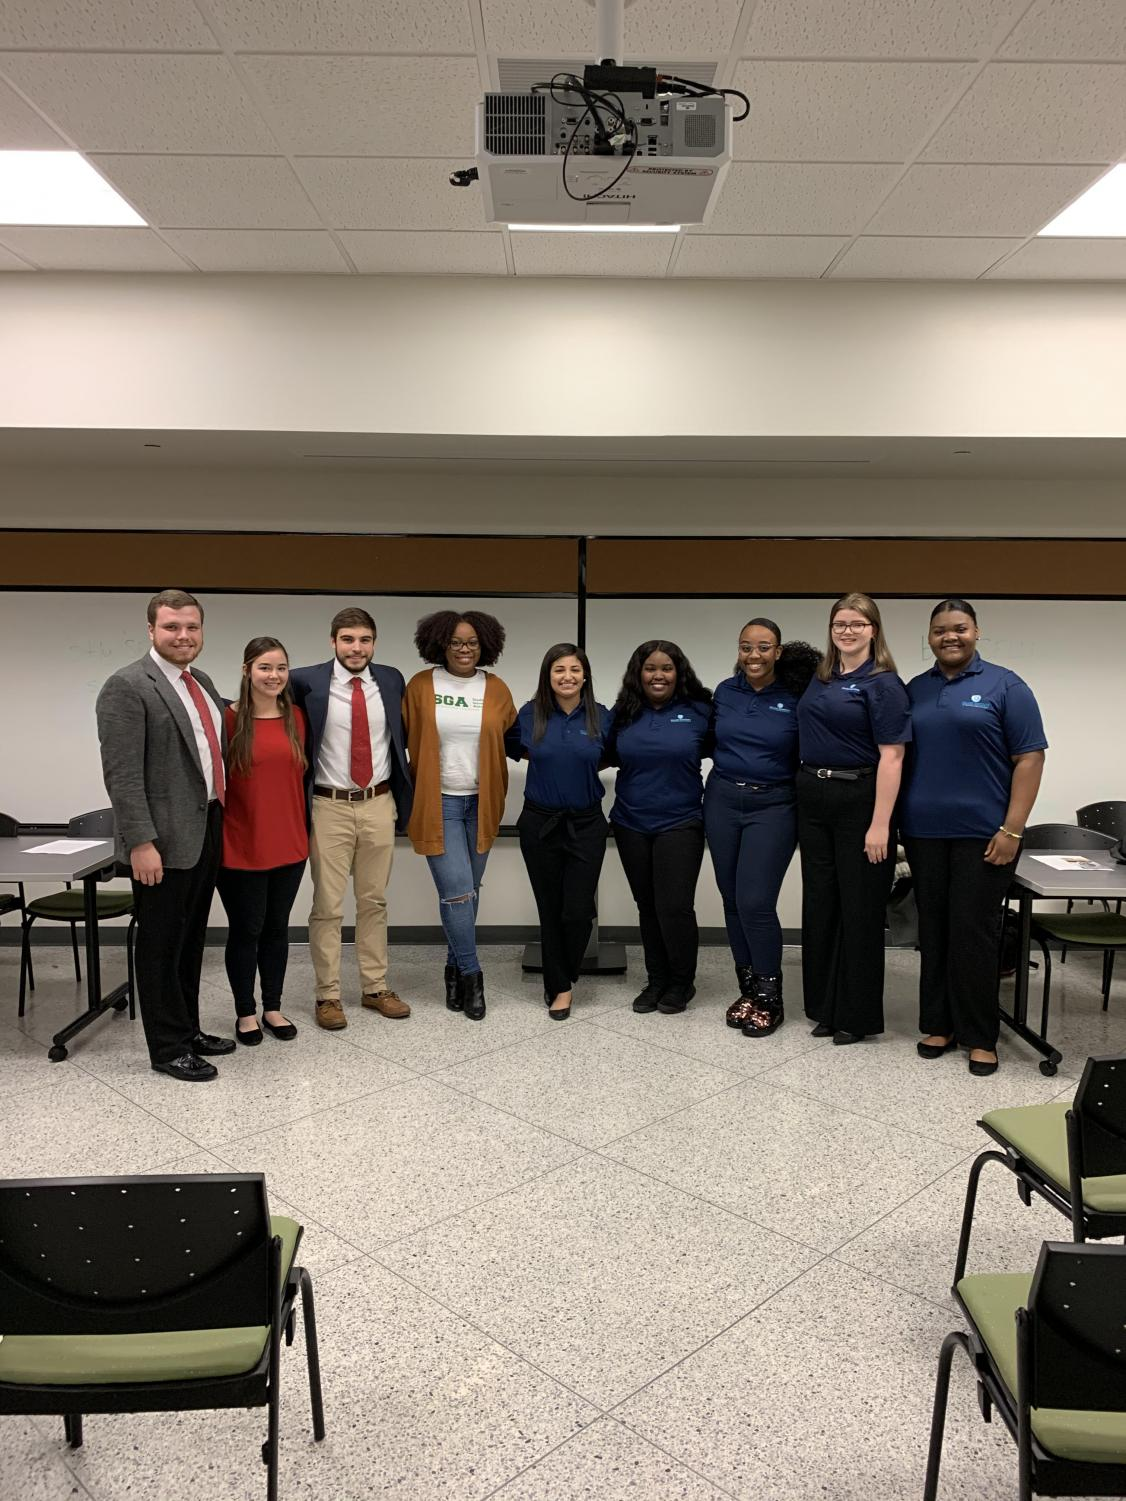 Participants of the Blue Meets Red event. From left to right, College Republicans Daniel Seither, Rachel Selman and Travis Thompson. Moderator Indya Major, and College Democrats Leah Cross, Jasmine Bickham, Alana Collins, Rebecca Shields and Systeria Collins.